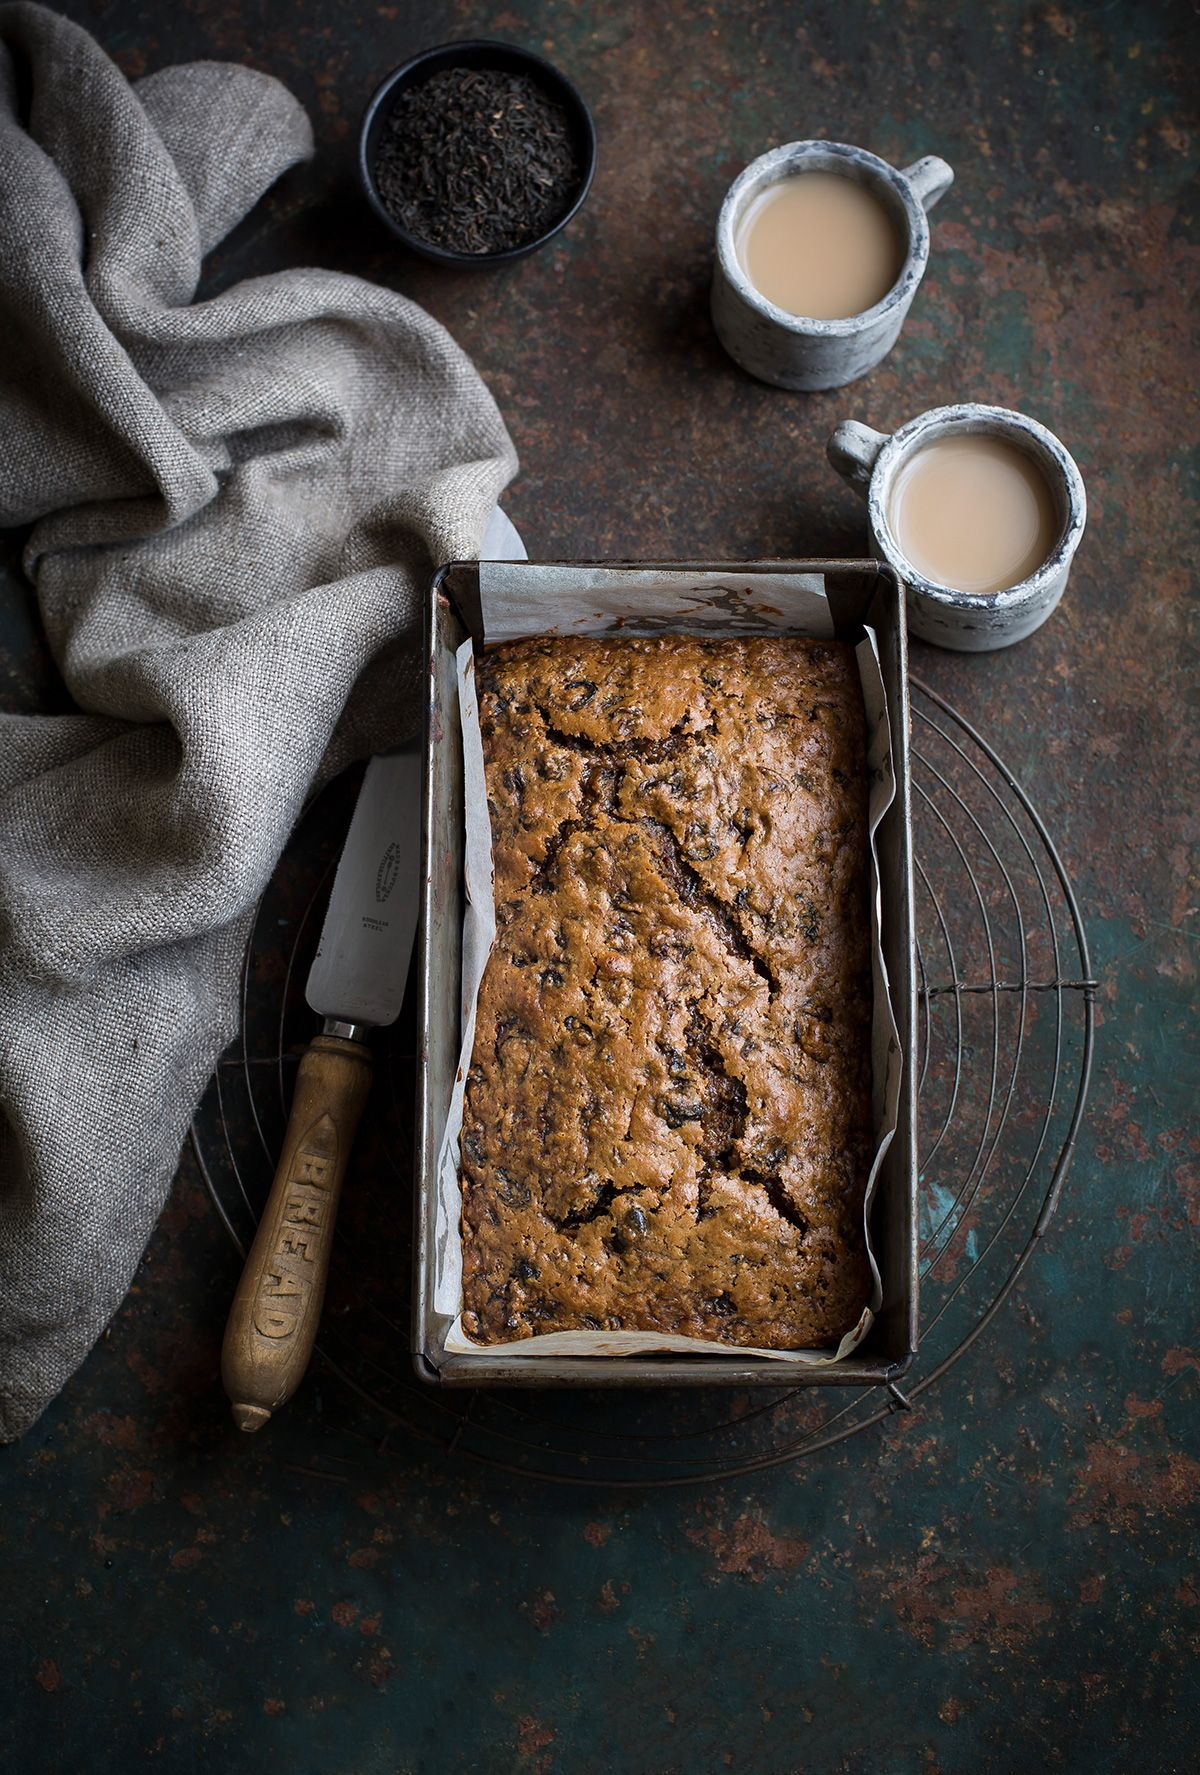 Earl Grey Tea Fruit Loaf Recipe Baking Photography Tea Cakes Food